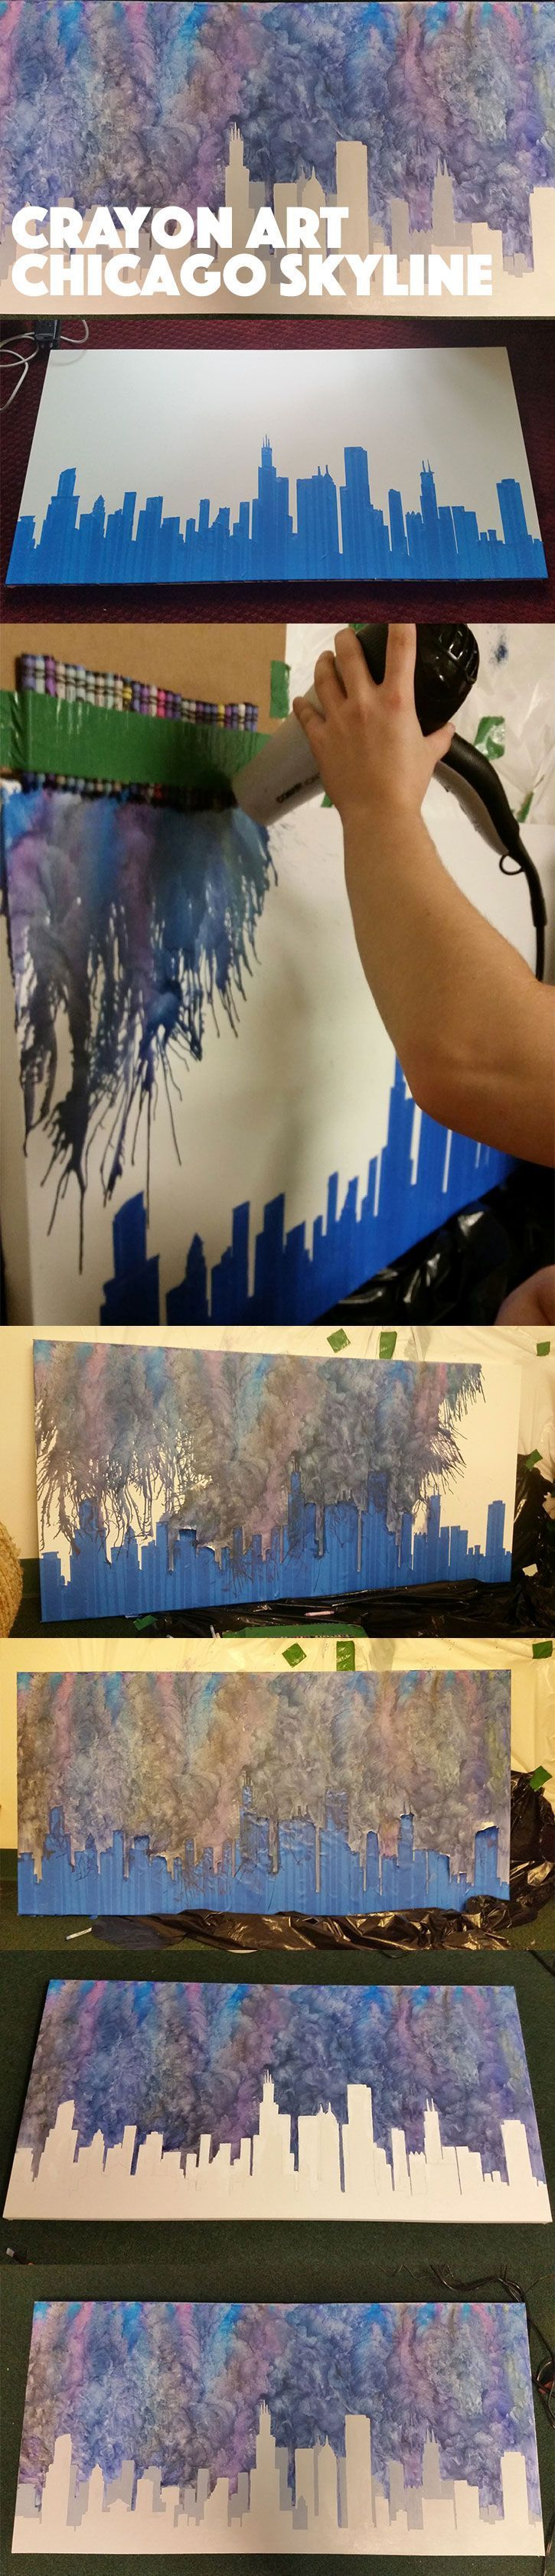 Crayon Art - Chicago Skyline. Melted crayons and finger smudges to create the background. Paint for the skyline.